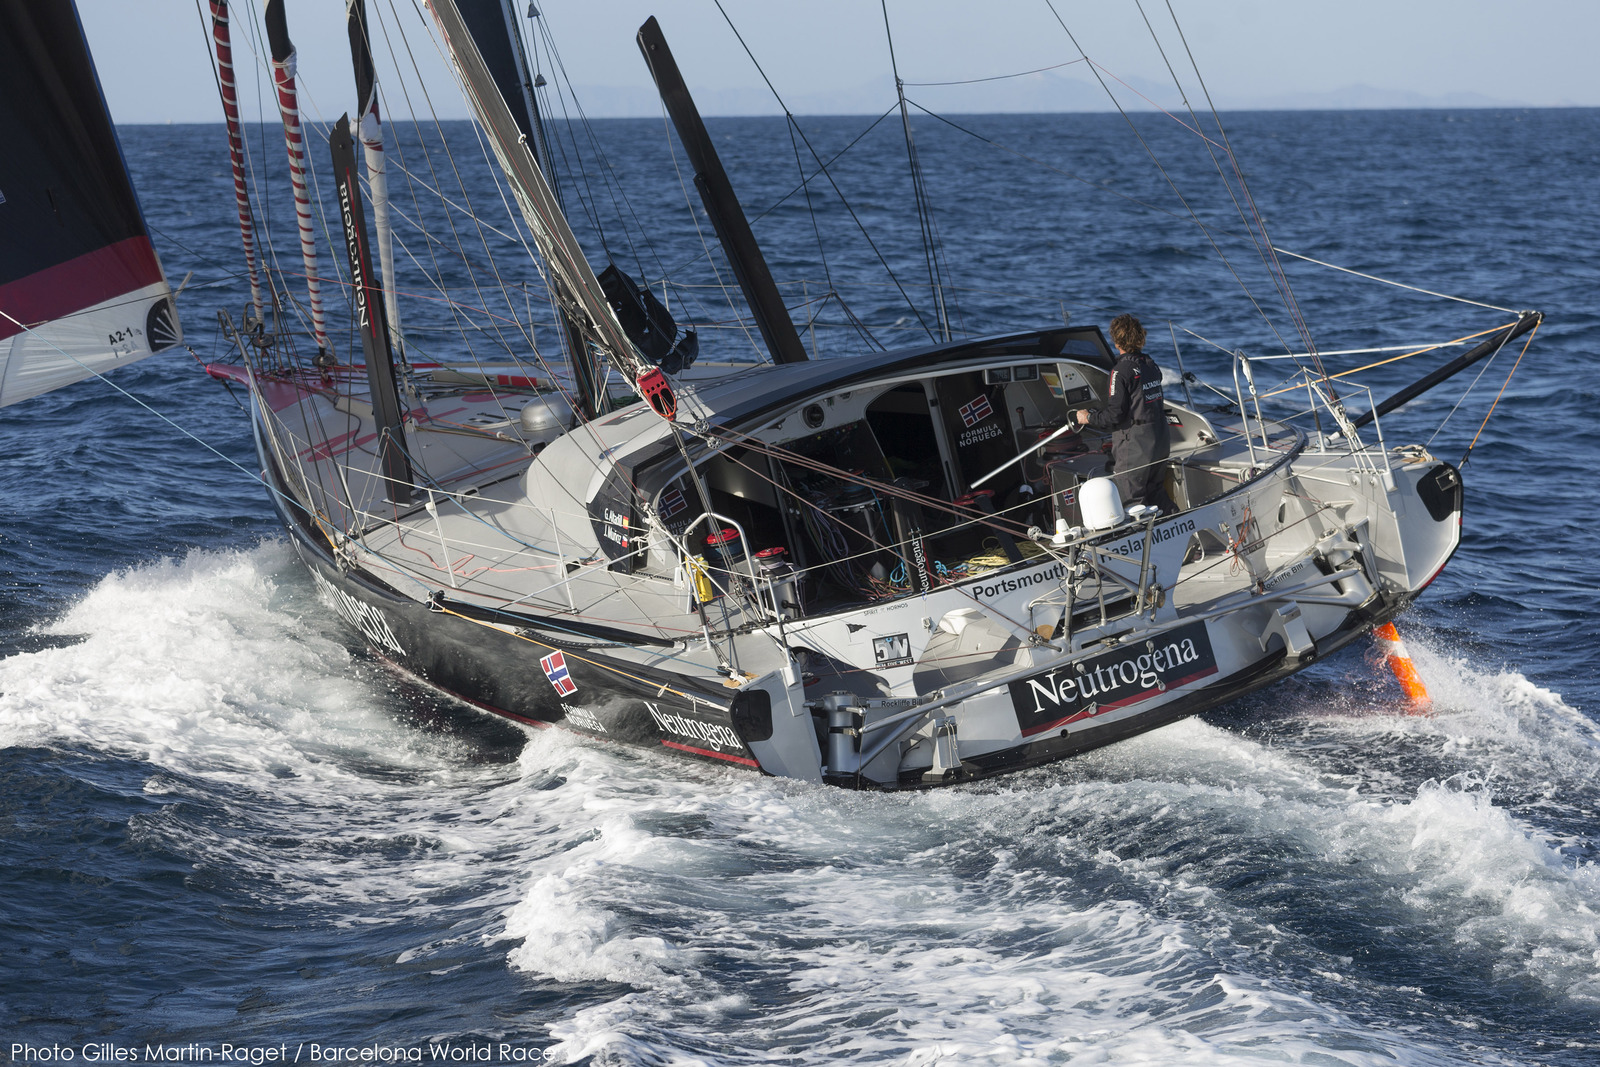 <b>BWR - 2015 - Technical Pit Stop in South New Zealand for Second Placed Neutrogena</b>